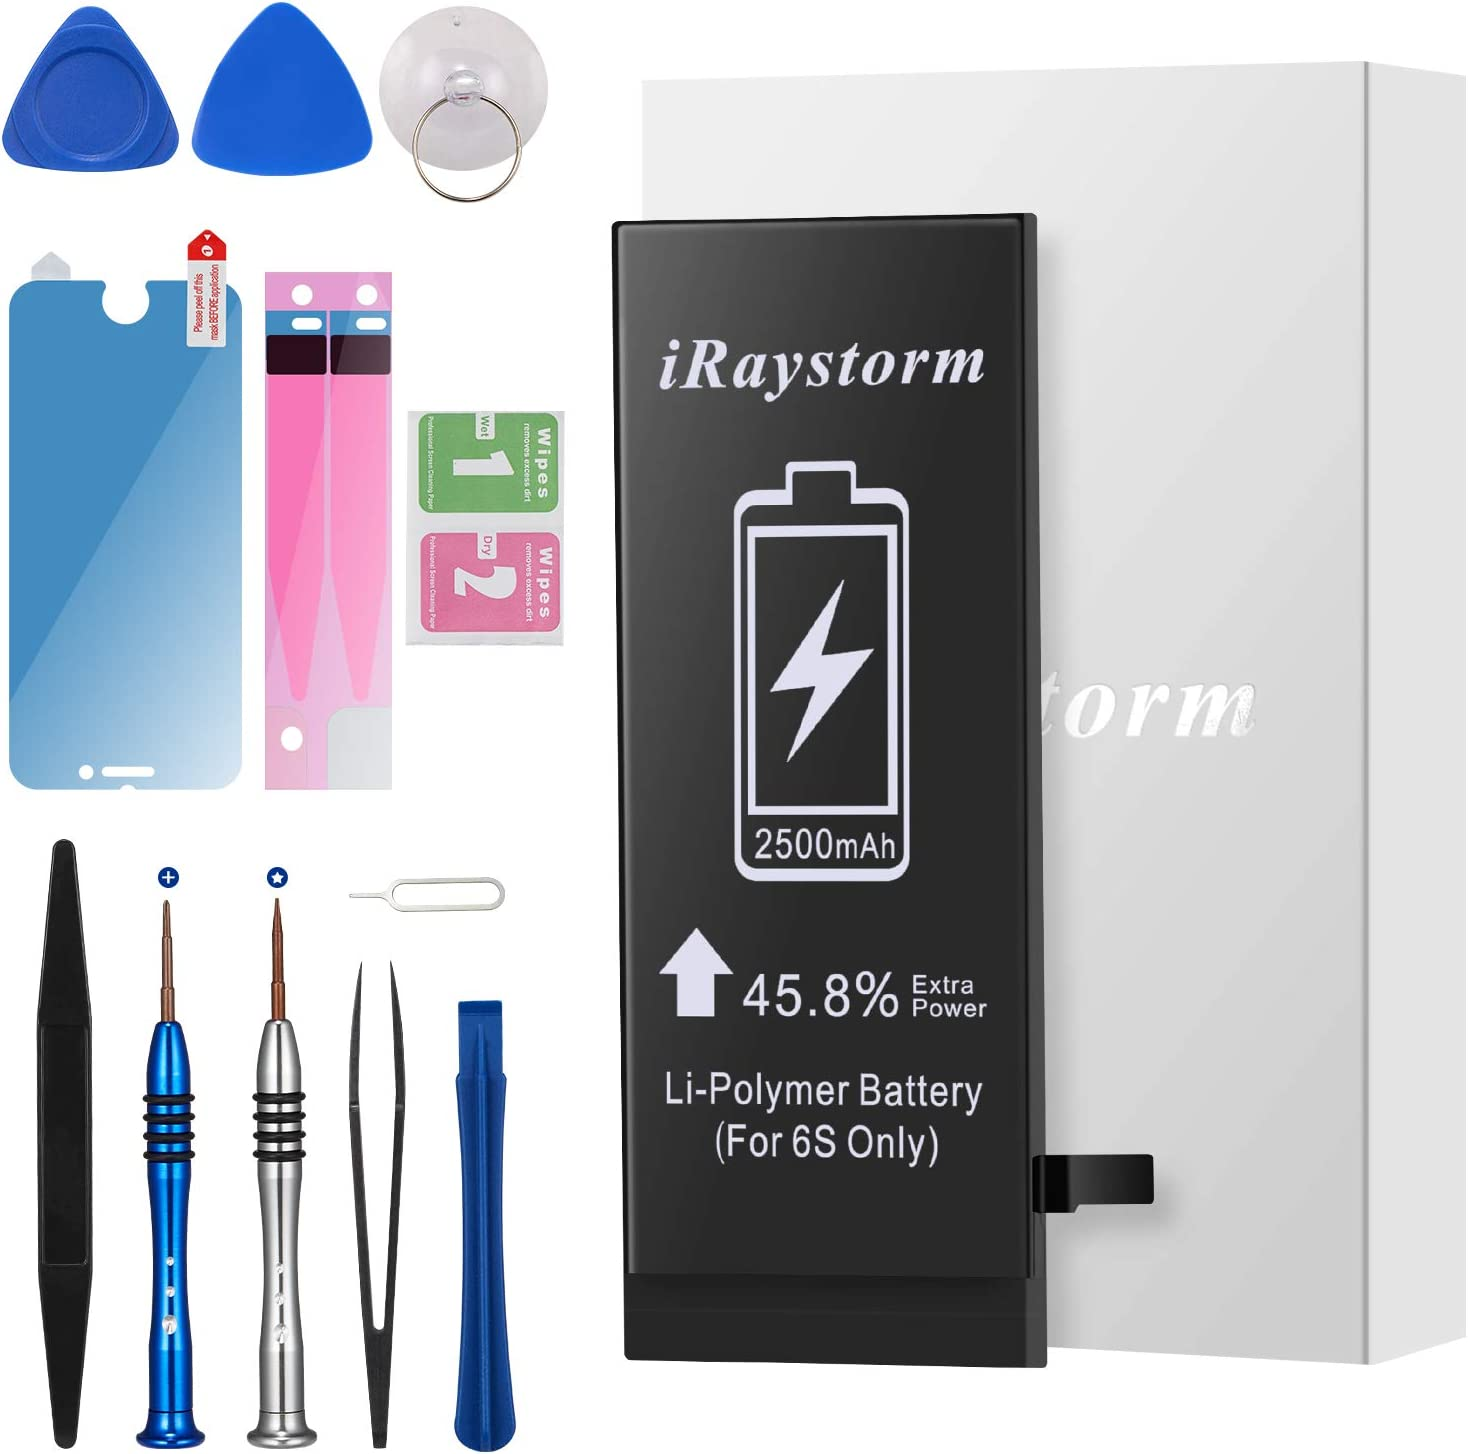 iRaystorm Battery Compatible for iPhone 6s 2500mAh High Capacity Replacement Battery New 0 Cycle with Complete Repair Tool Kit, Adhesive, Instructions & Screen Protector -2 Year Warranty 2020 Upgraded